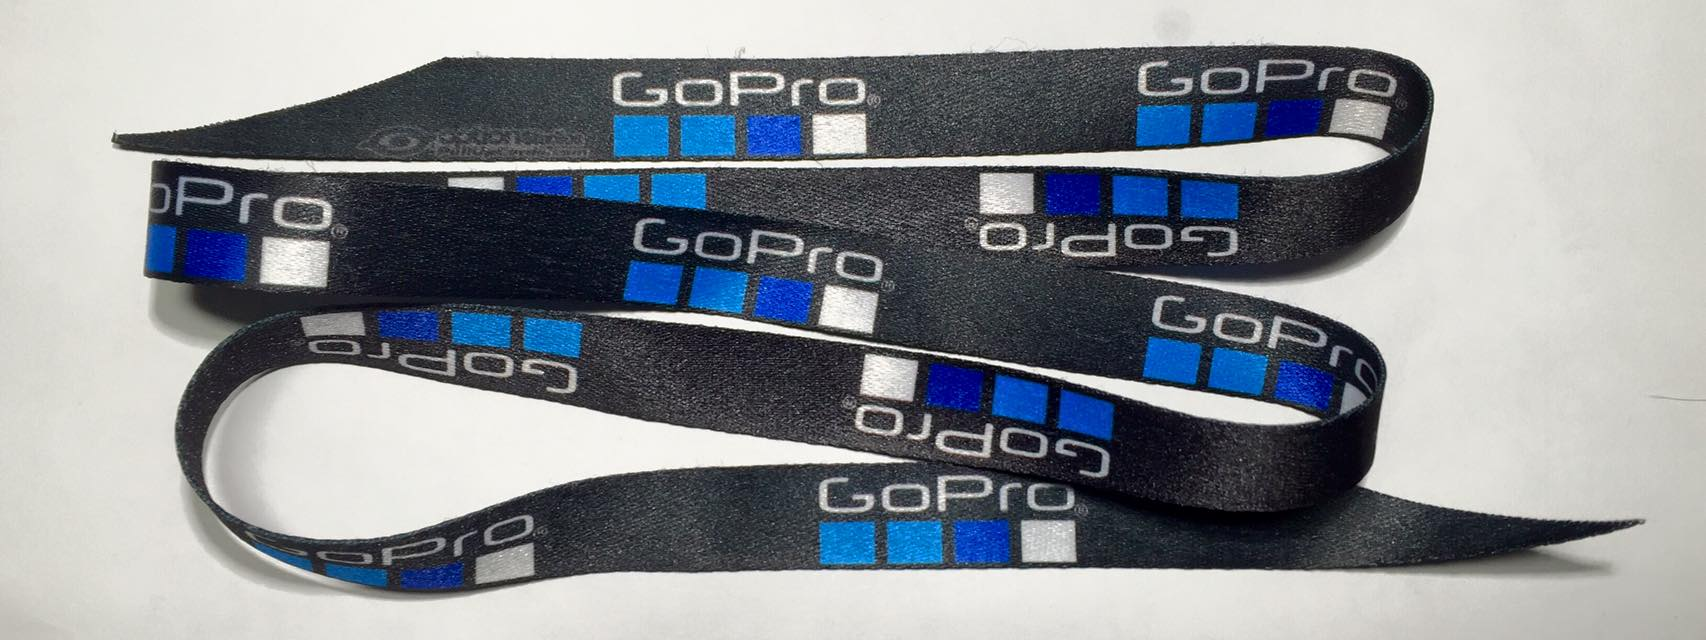 GoPro pullup cords